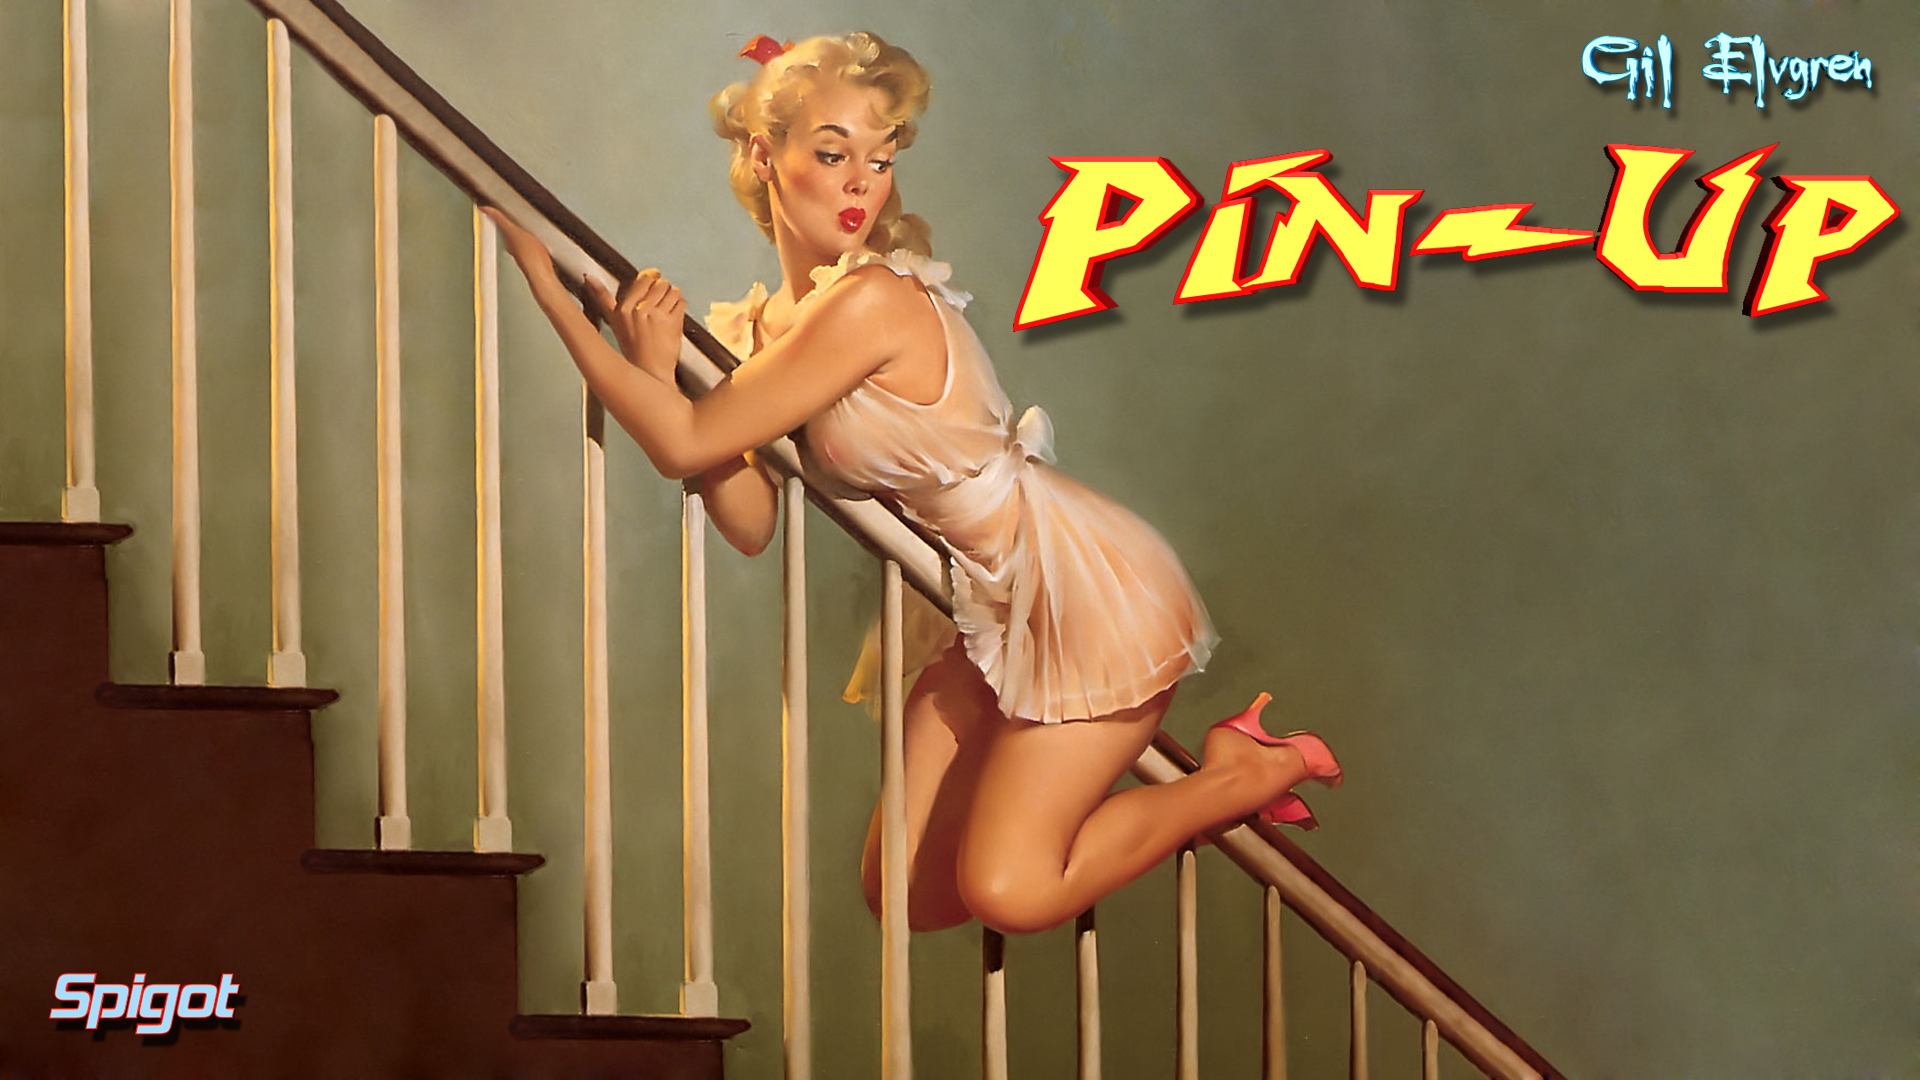 Pinupwallpaper Пинап часть Pinterest Resolutions